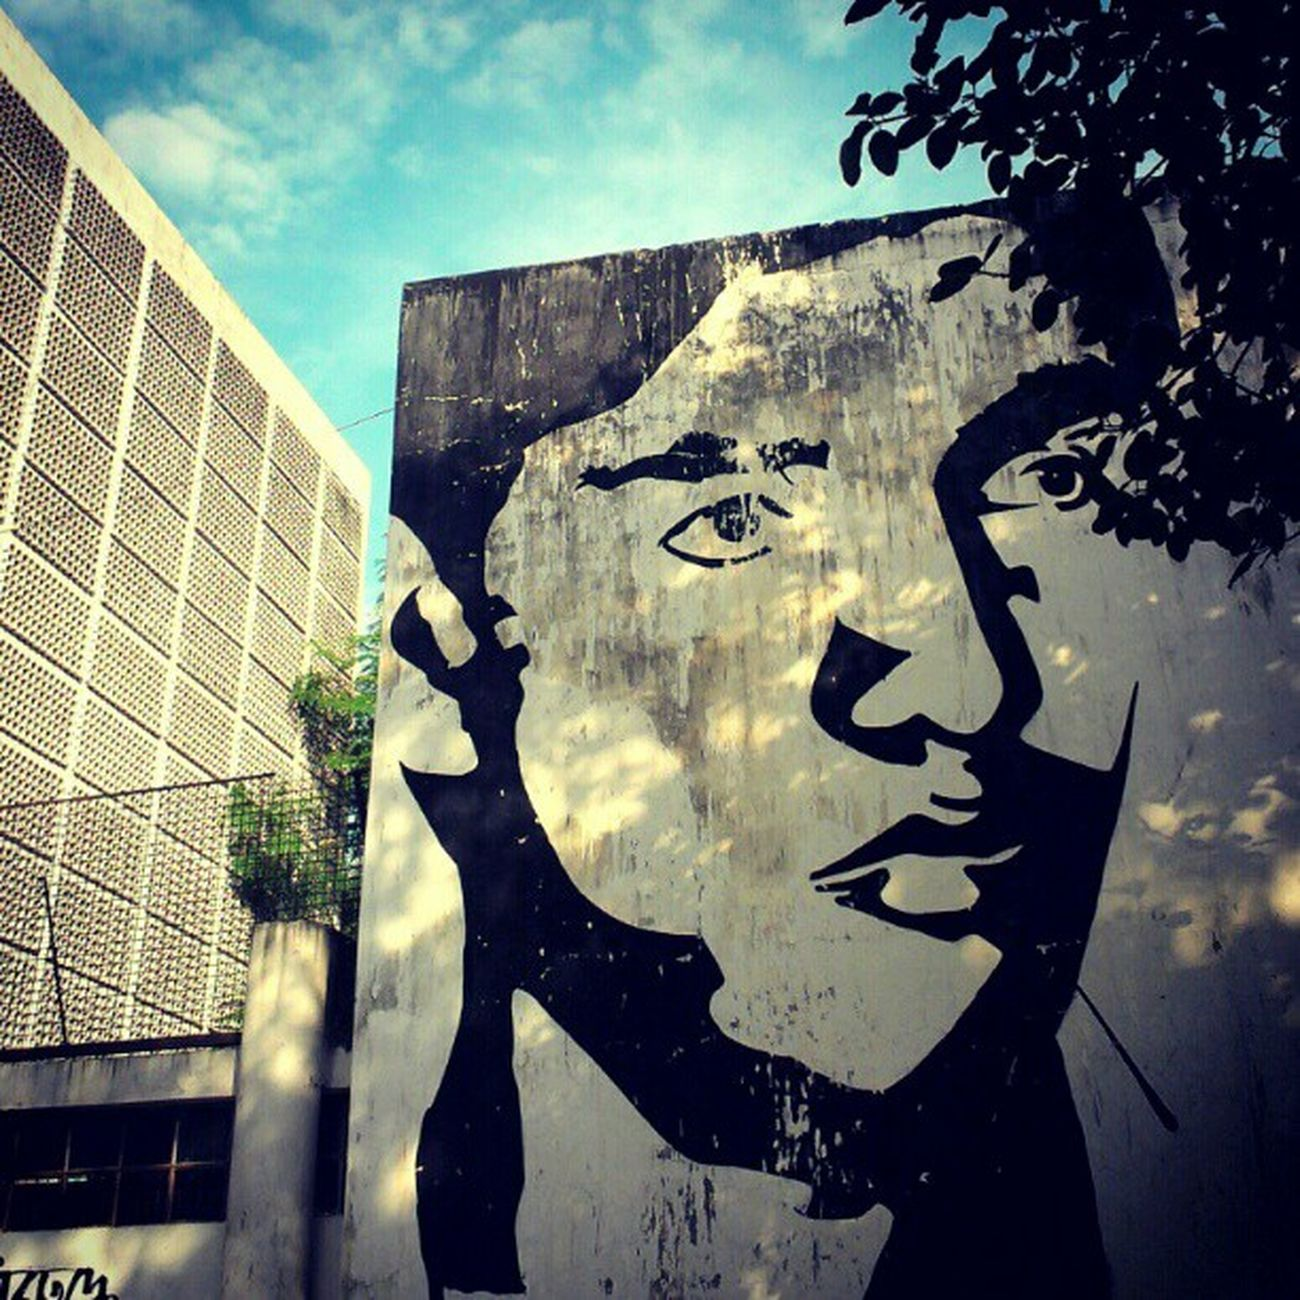 universityofdhaka Dhaka Graffiti Face Sky Mural Blue Black